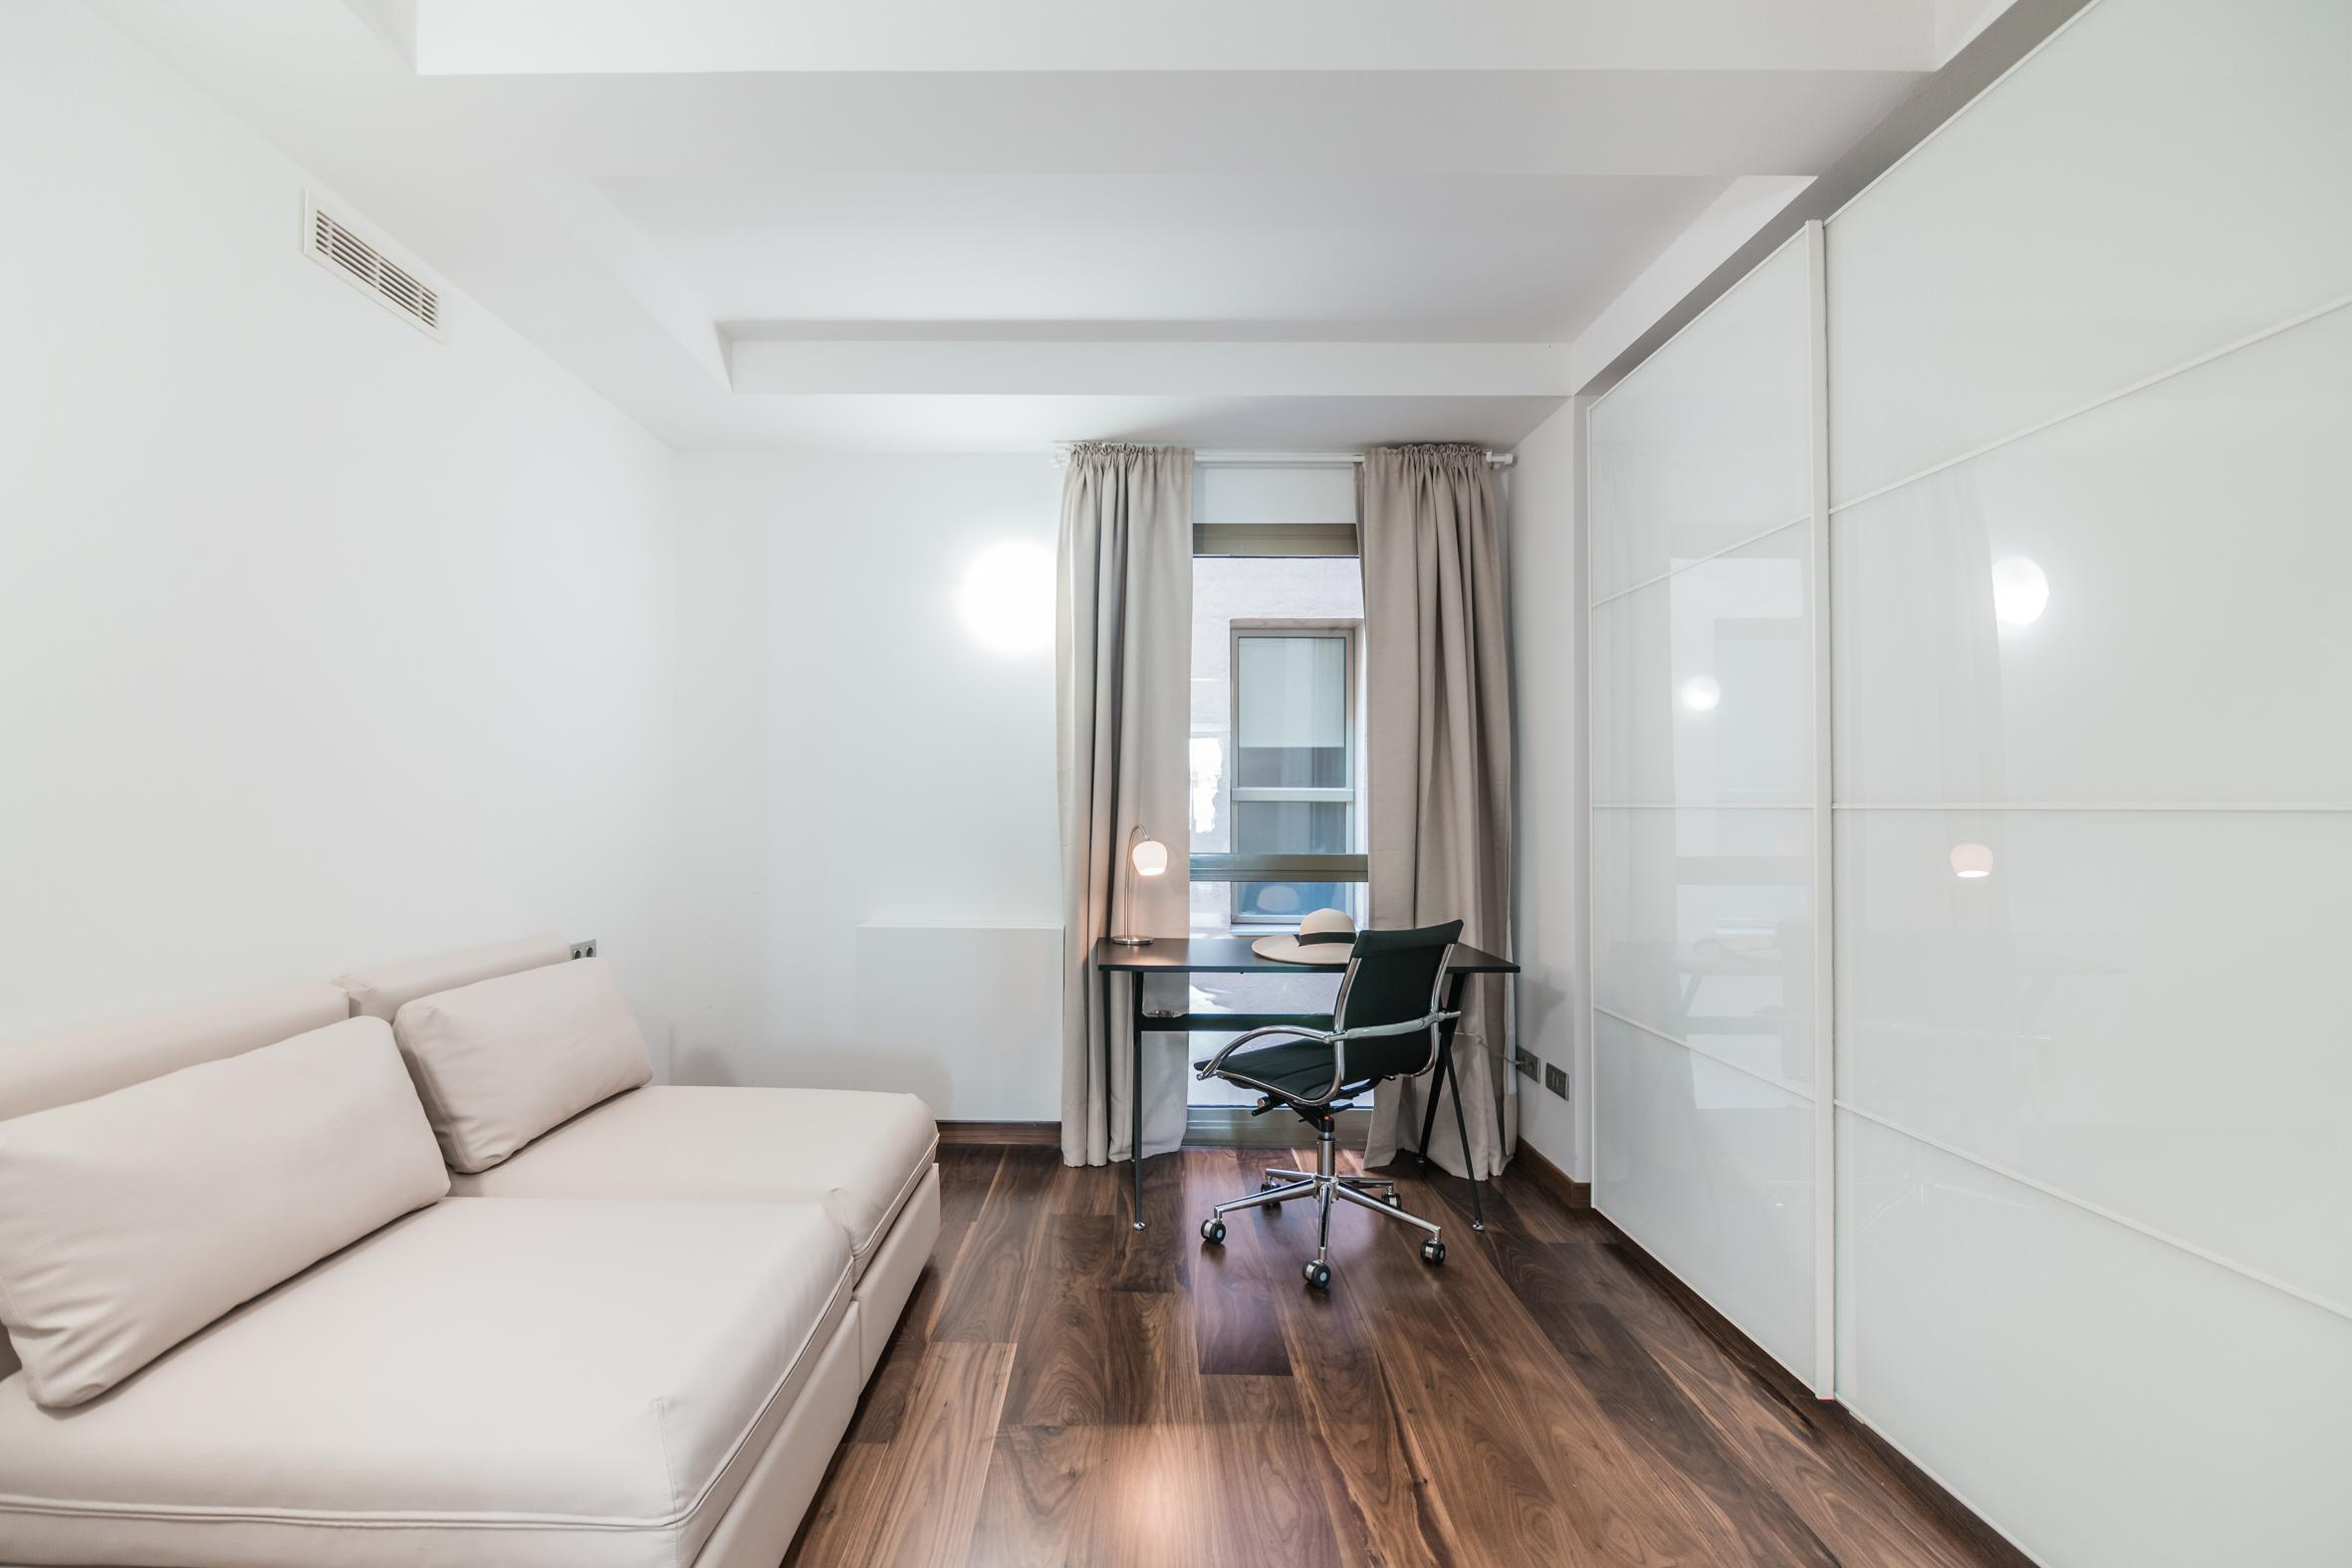 194056 Flat for sale in Ciutat Vella, Barri Gótic 15